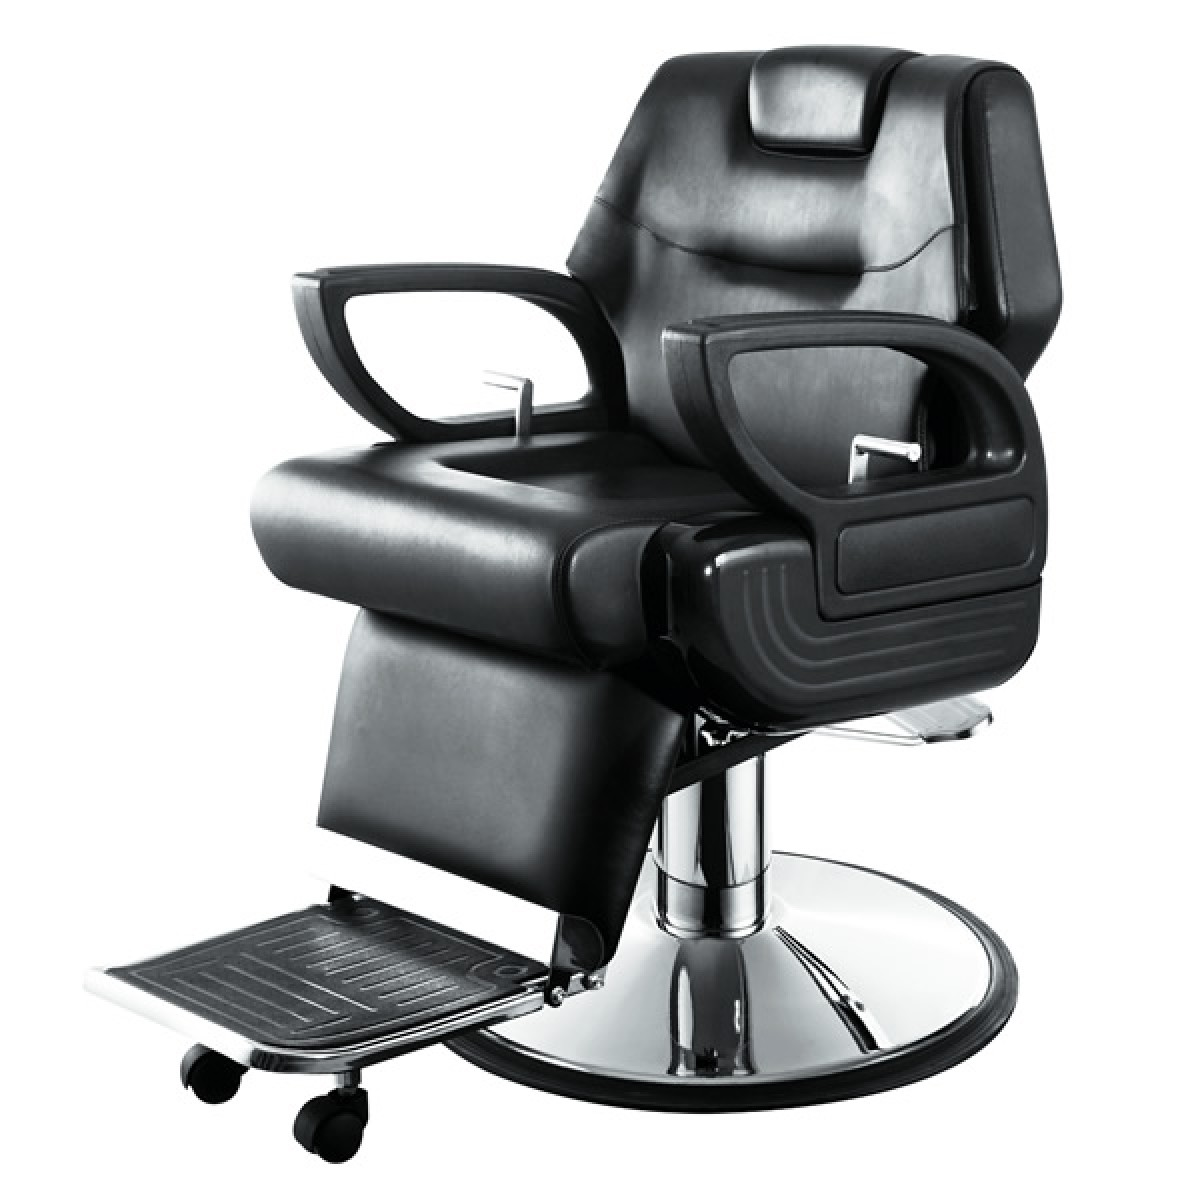 Barber Chairs Quotcaesar Quot Barber Chair With Heavy Duty Hydraulic Pump